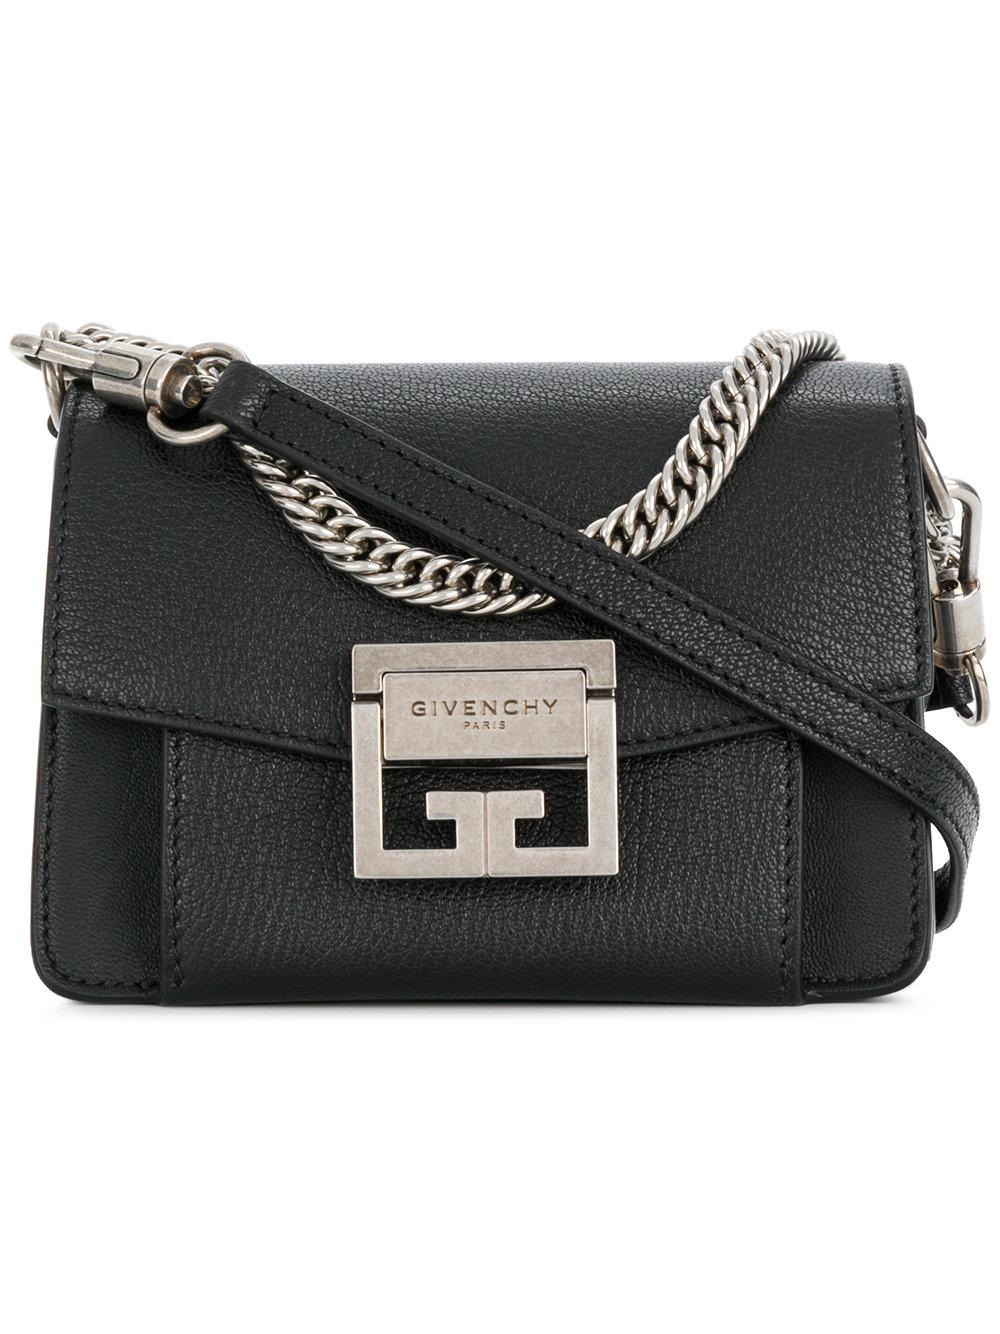 ee30ce80e3 Lyst - Givenchy Gv3 Mini Leather Bag in Black